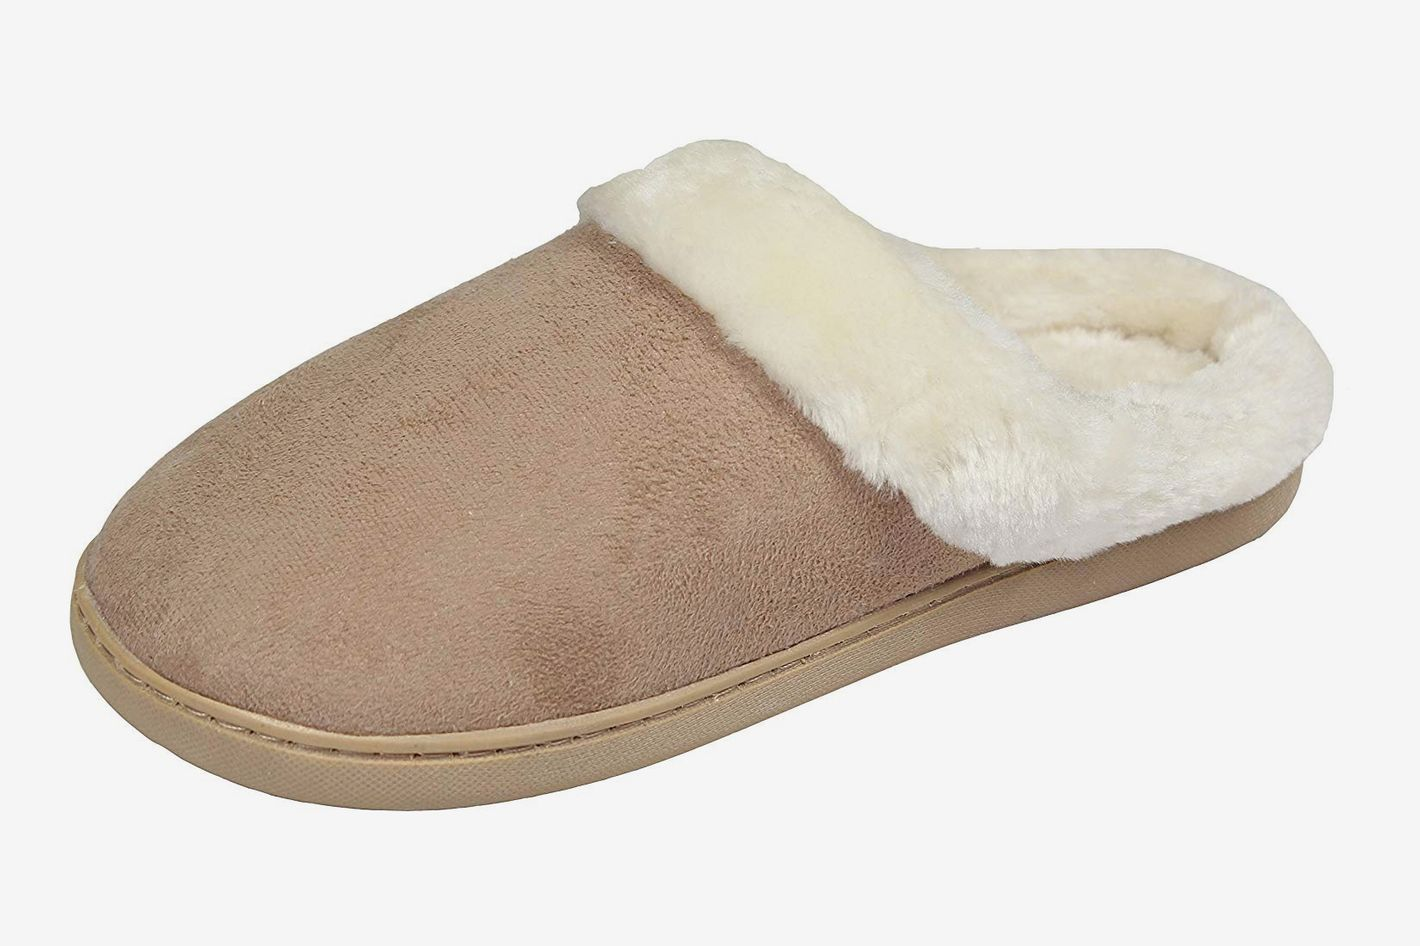 fd609b5db5a8 Luxehome Women s Cozy Fleece Slippers